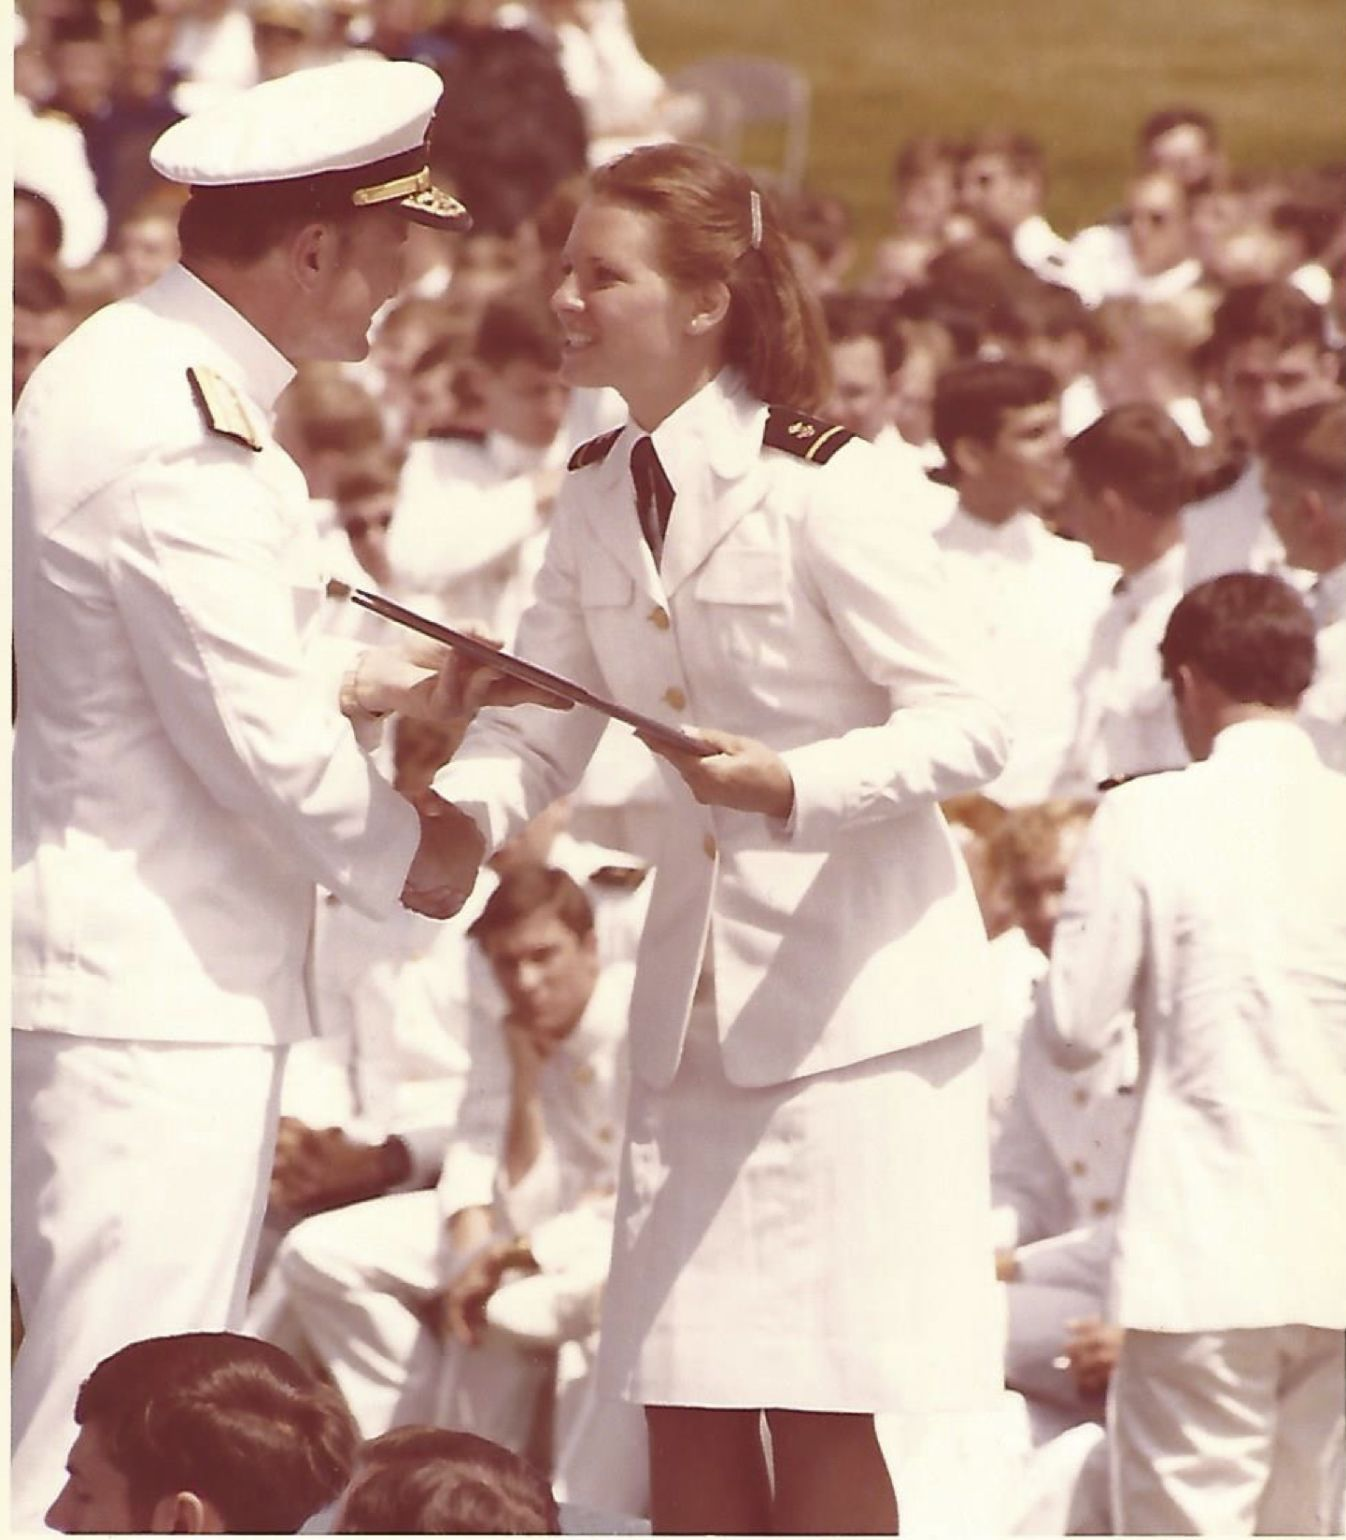 Life not easy for first class of women at U.S. Naval Academy